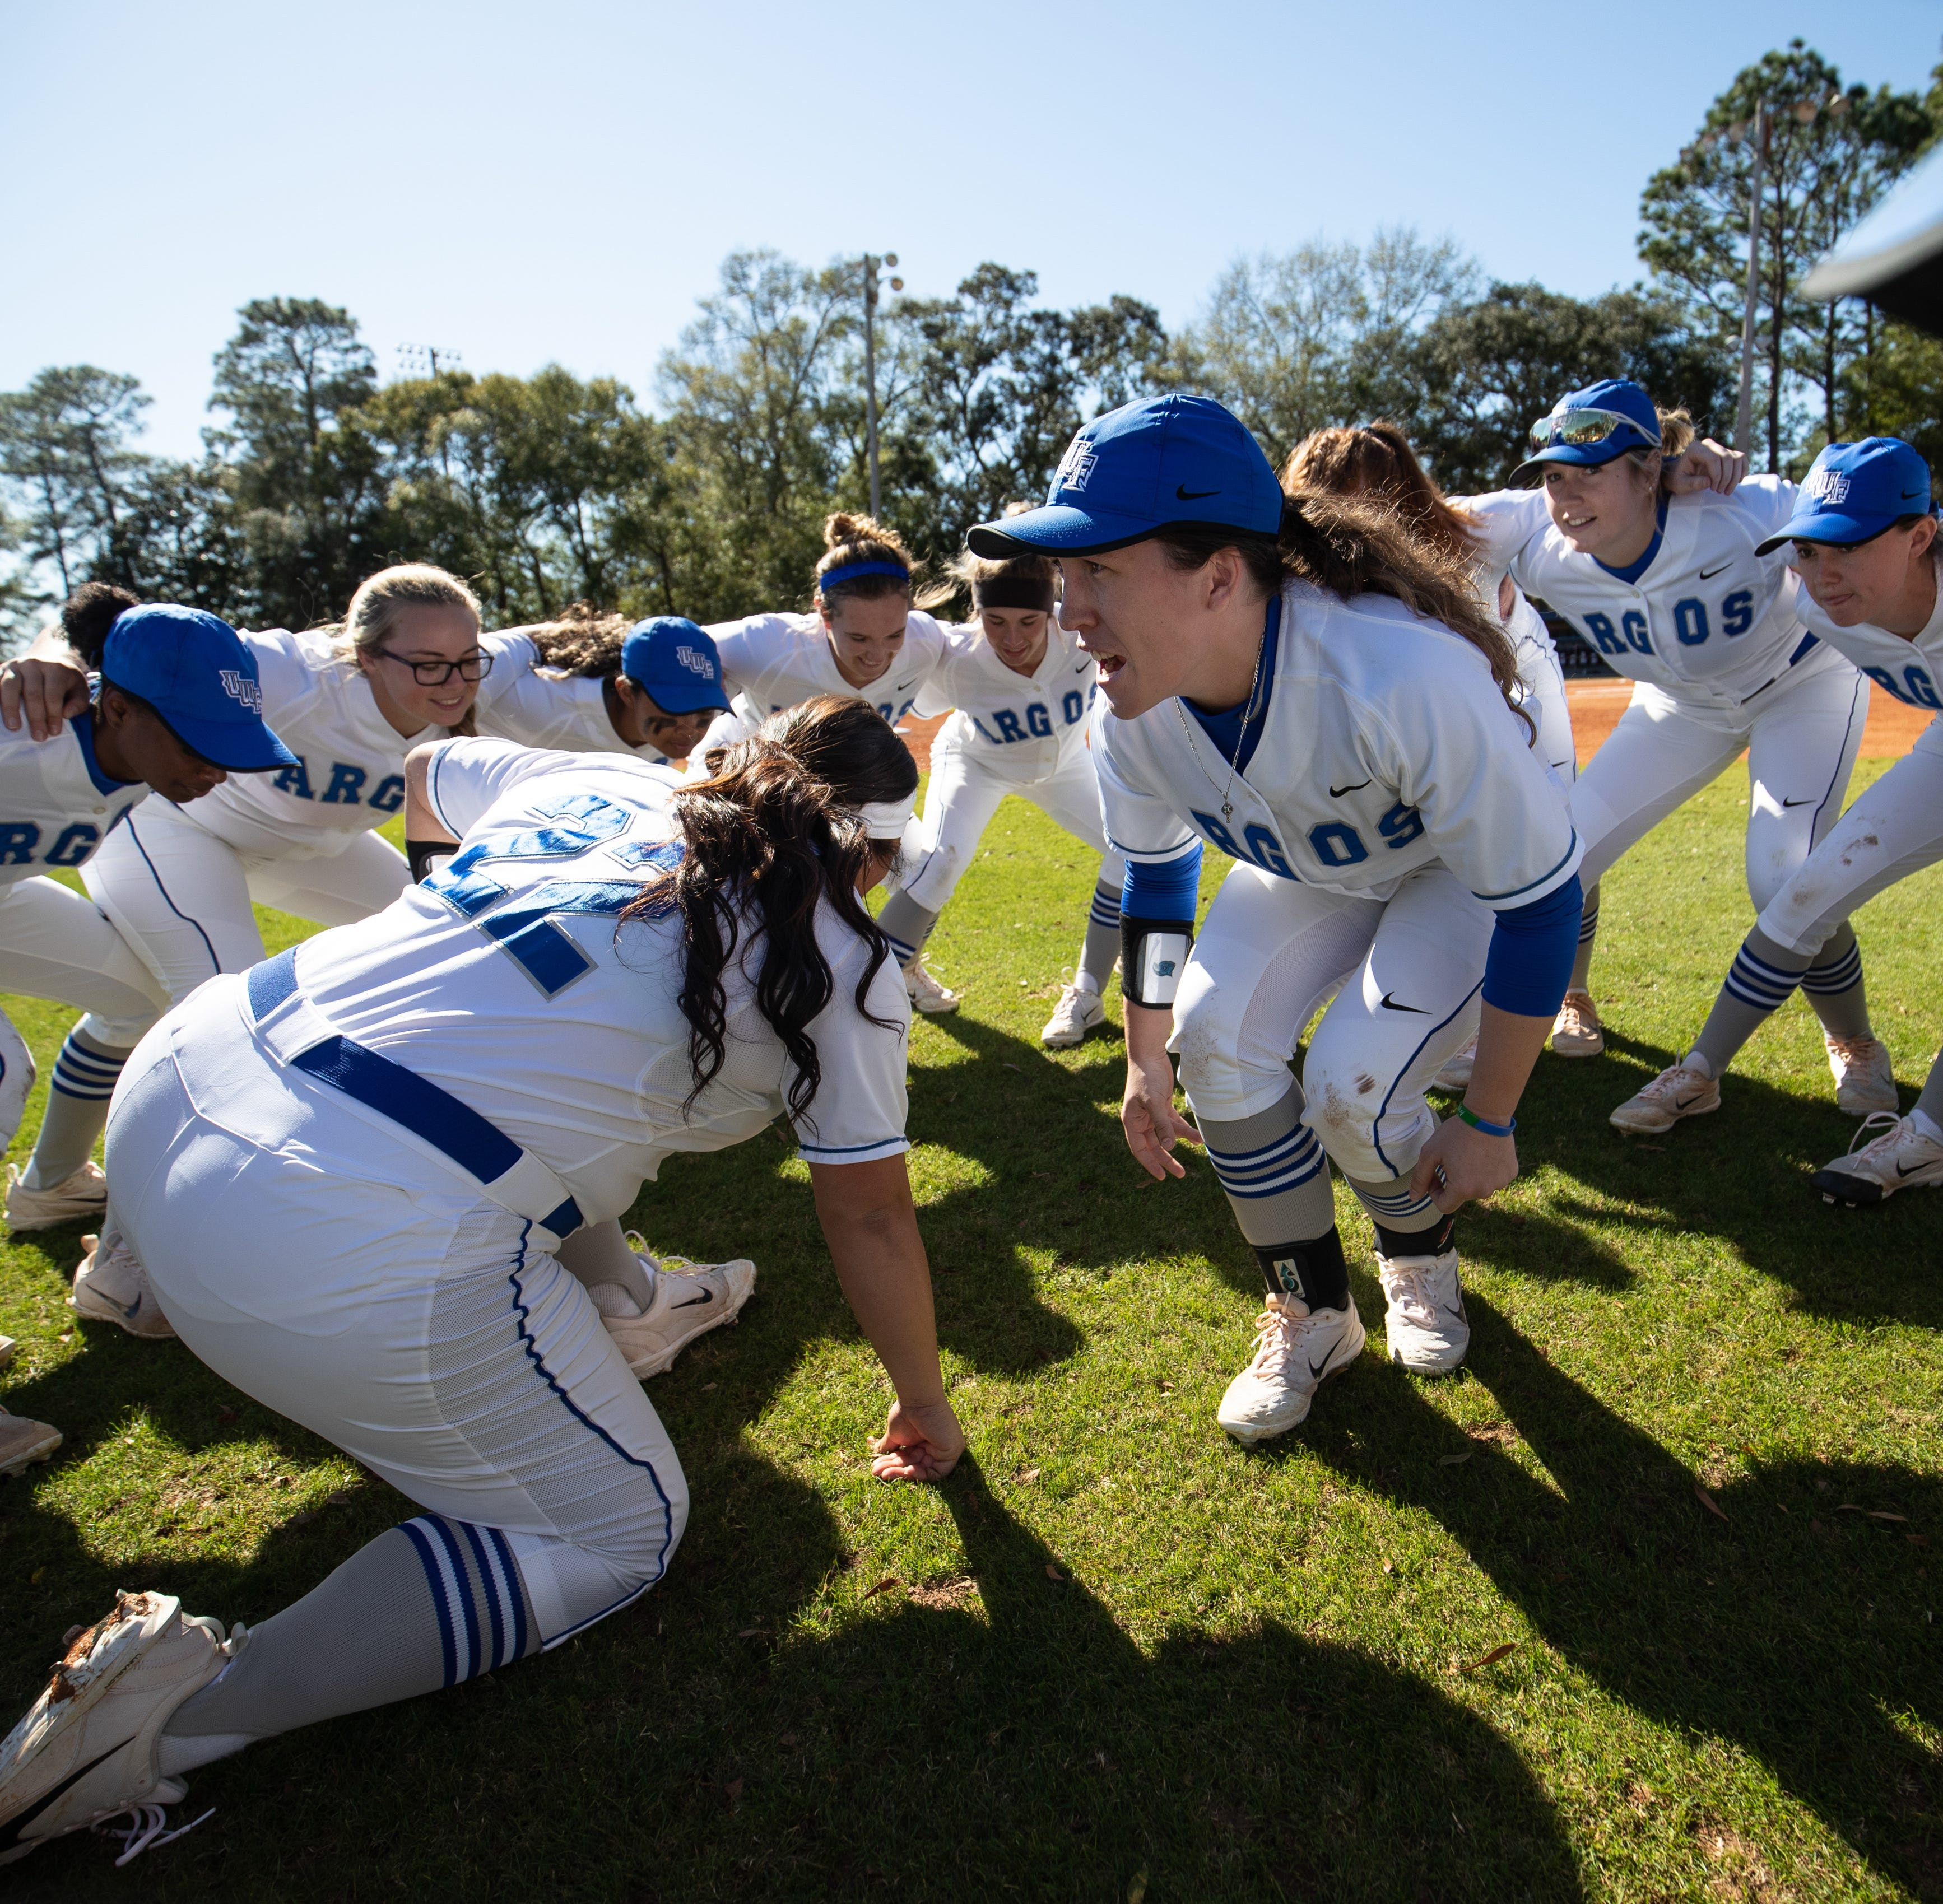 UWF softball rises to No. 1 national ranking for first time since 2005